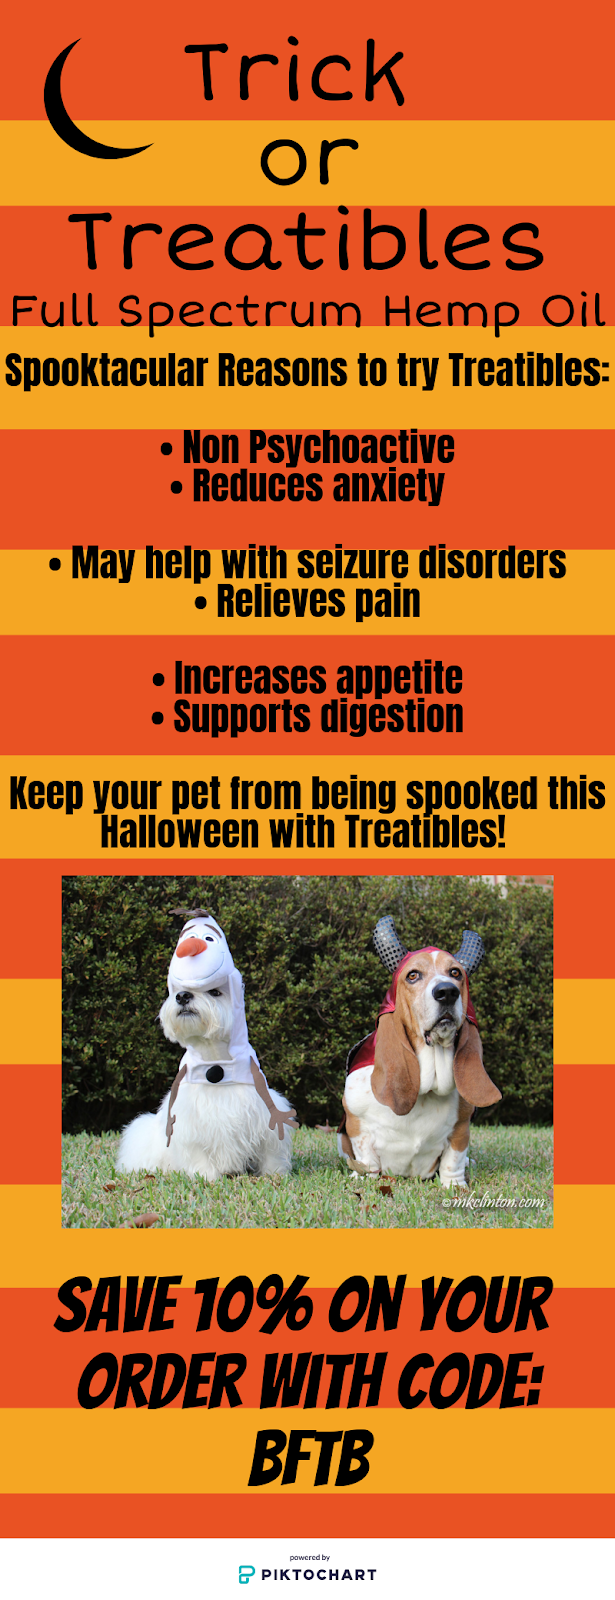 Reasons to use Treatibles this Halloween